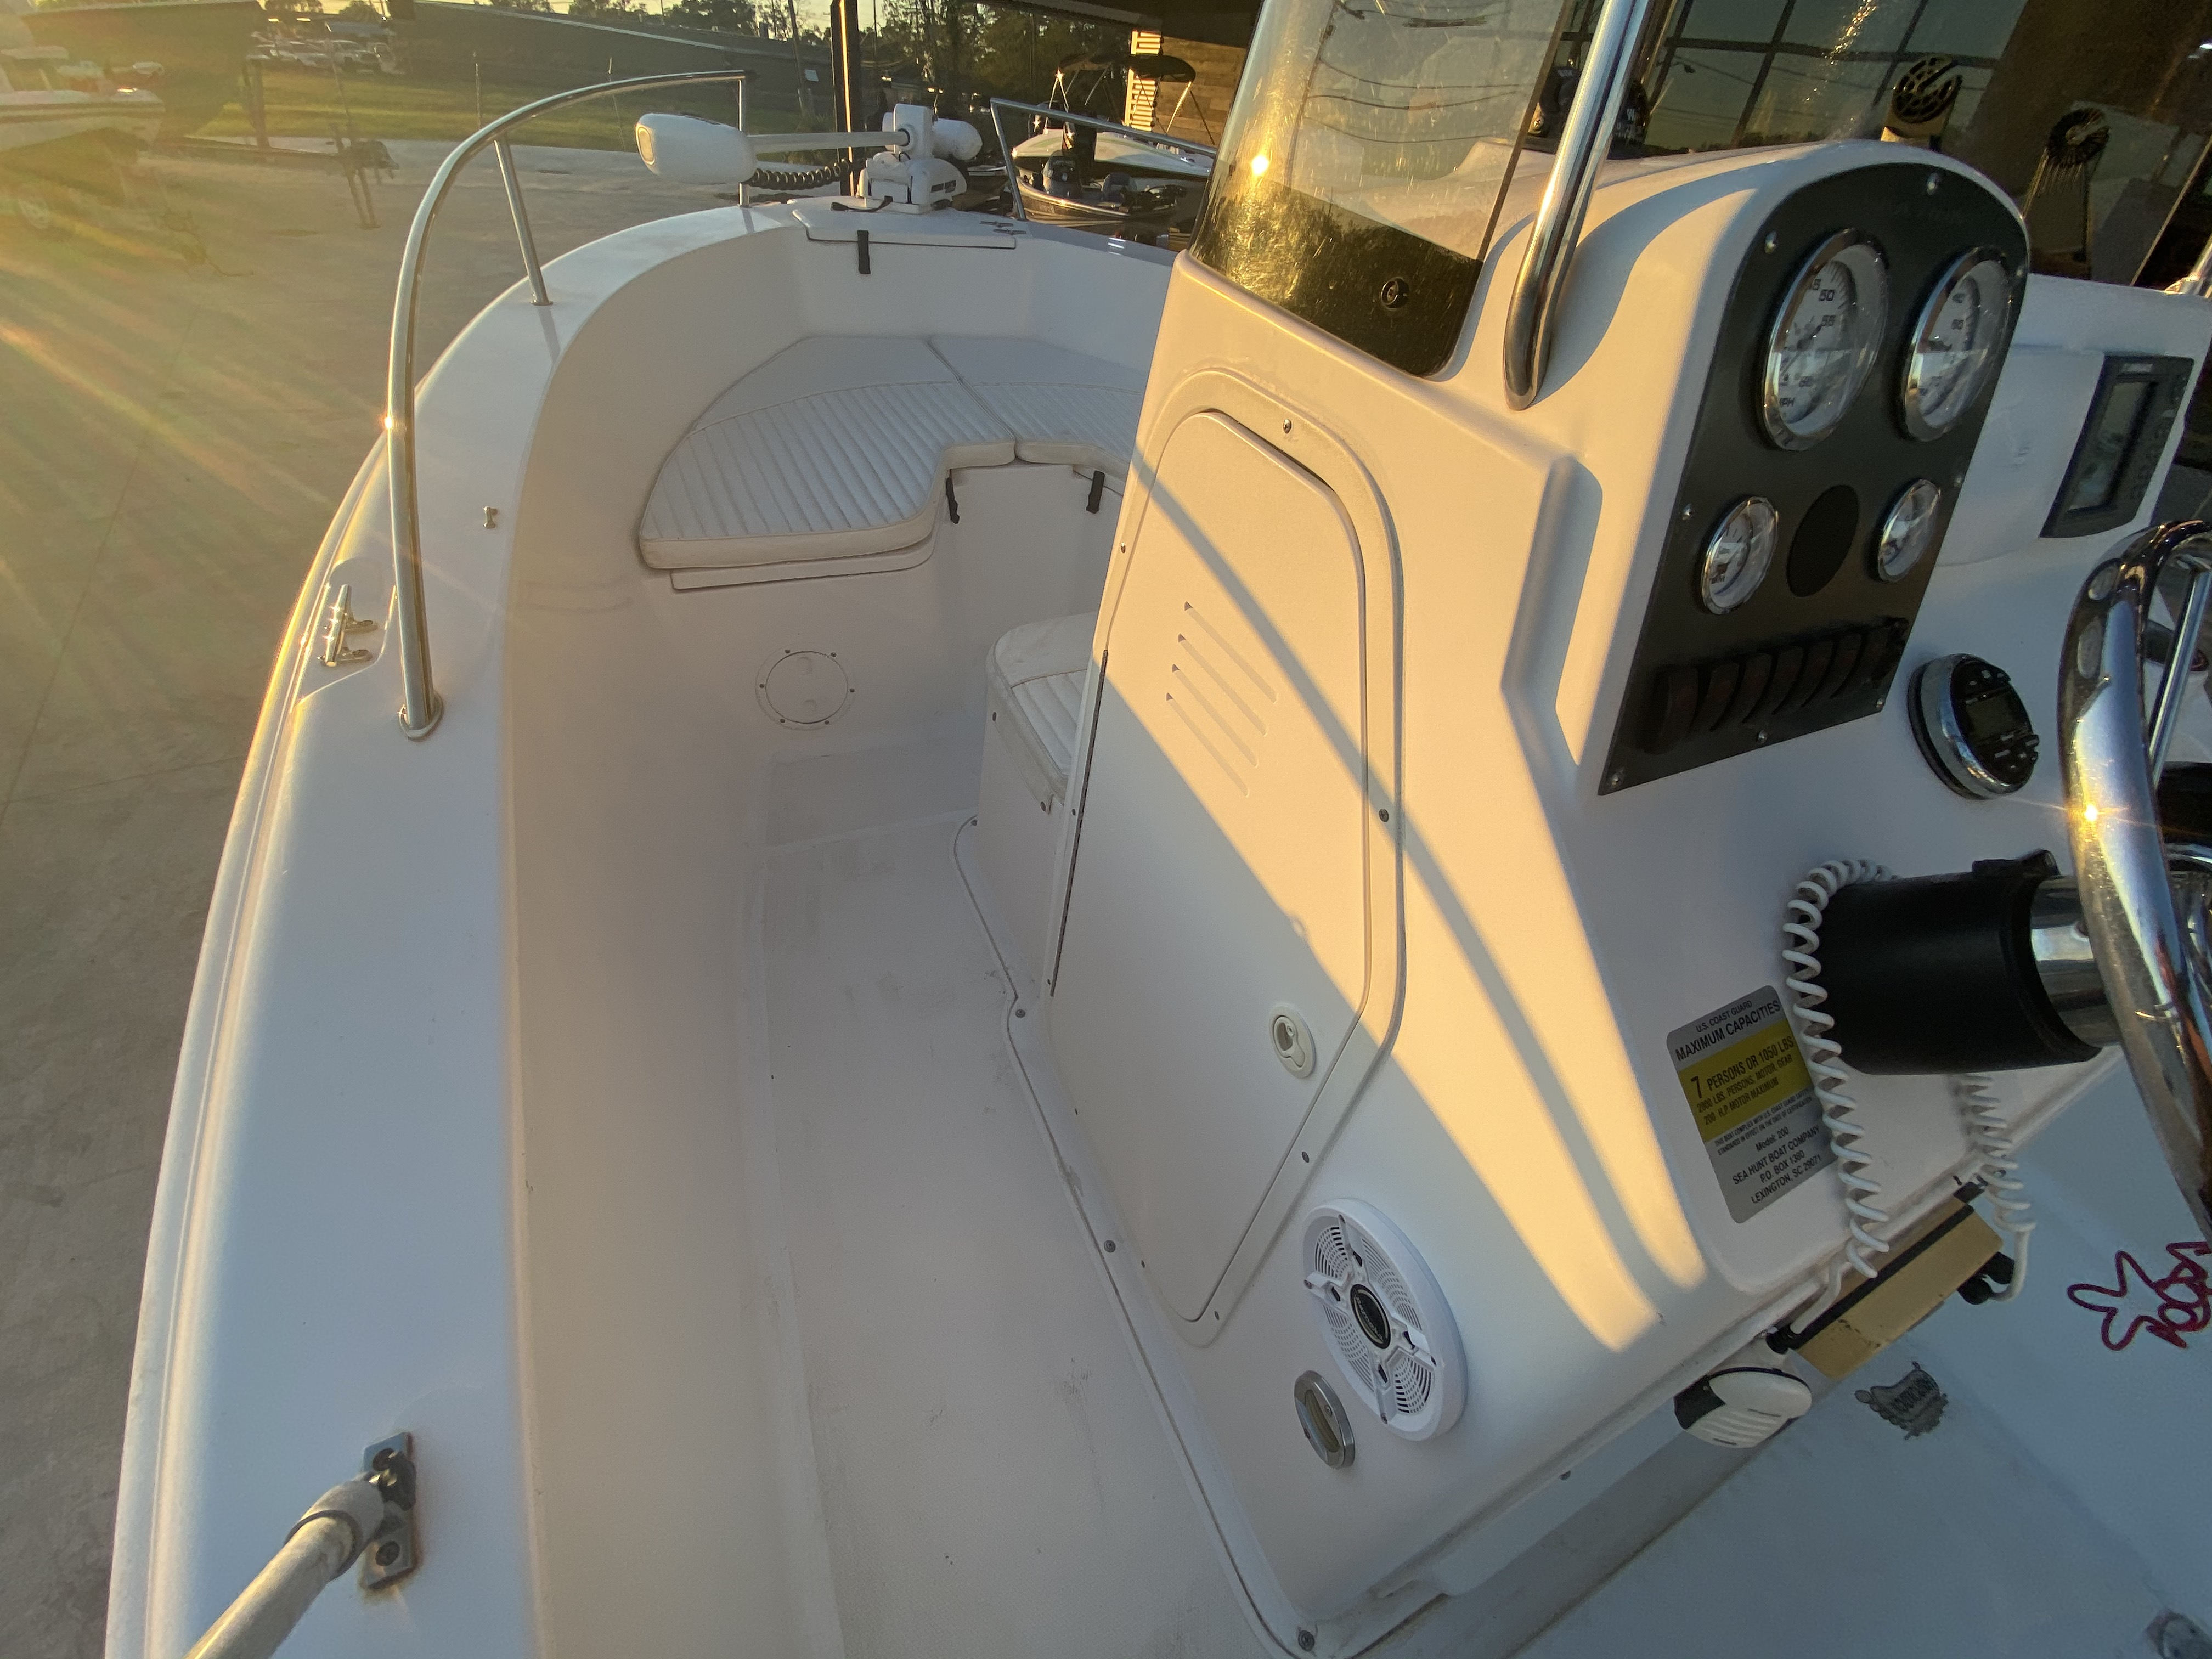 2007 Sea Hunt boat for sale, model of the boat is 207 Triton & Image # 27 of 28